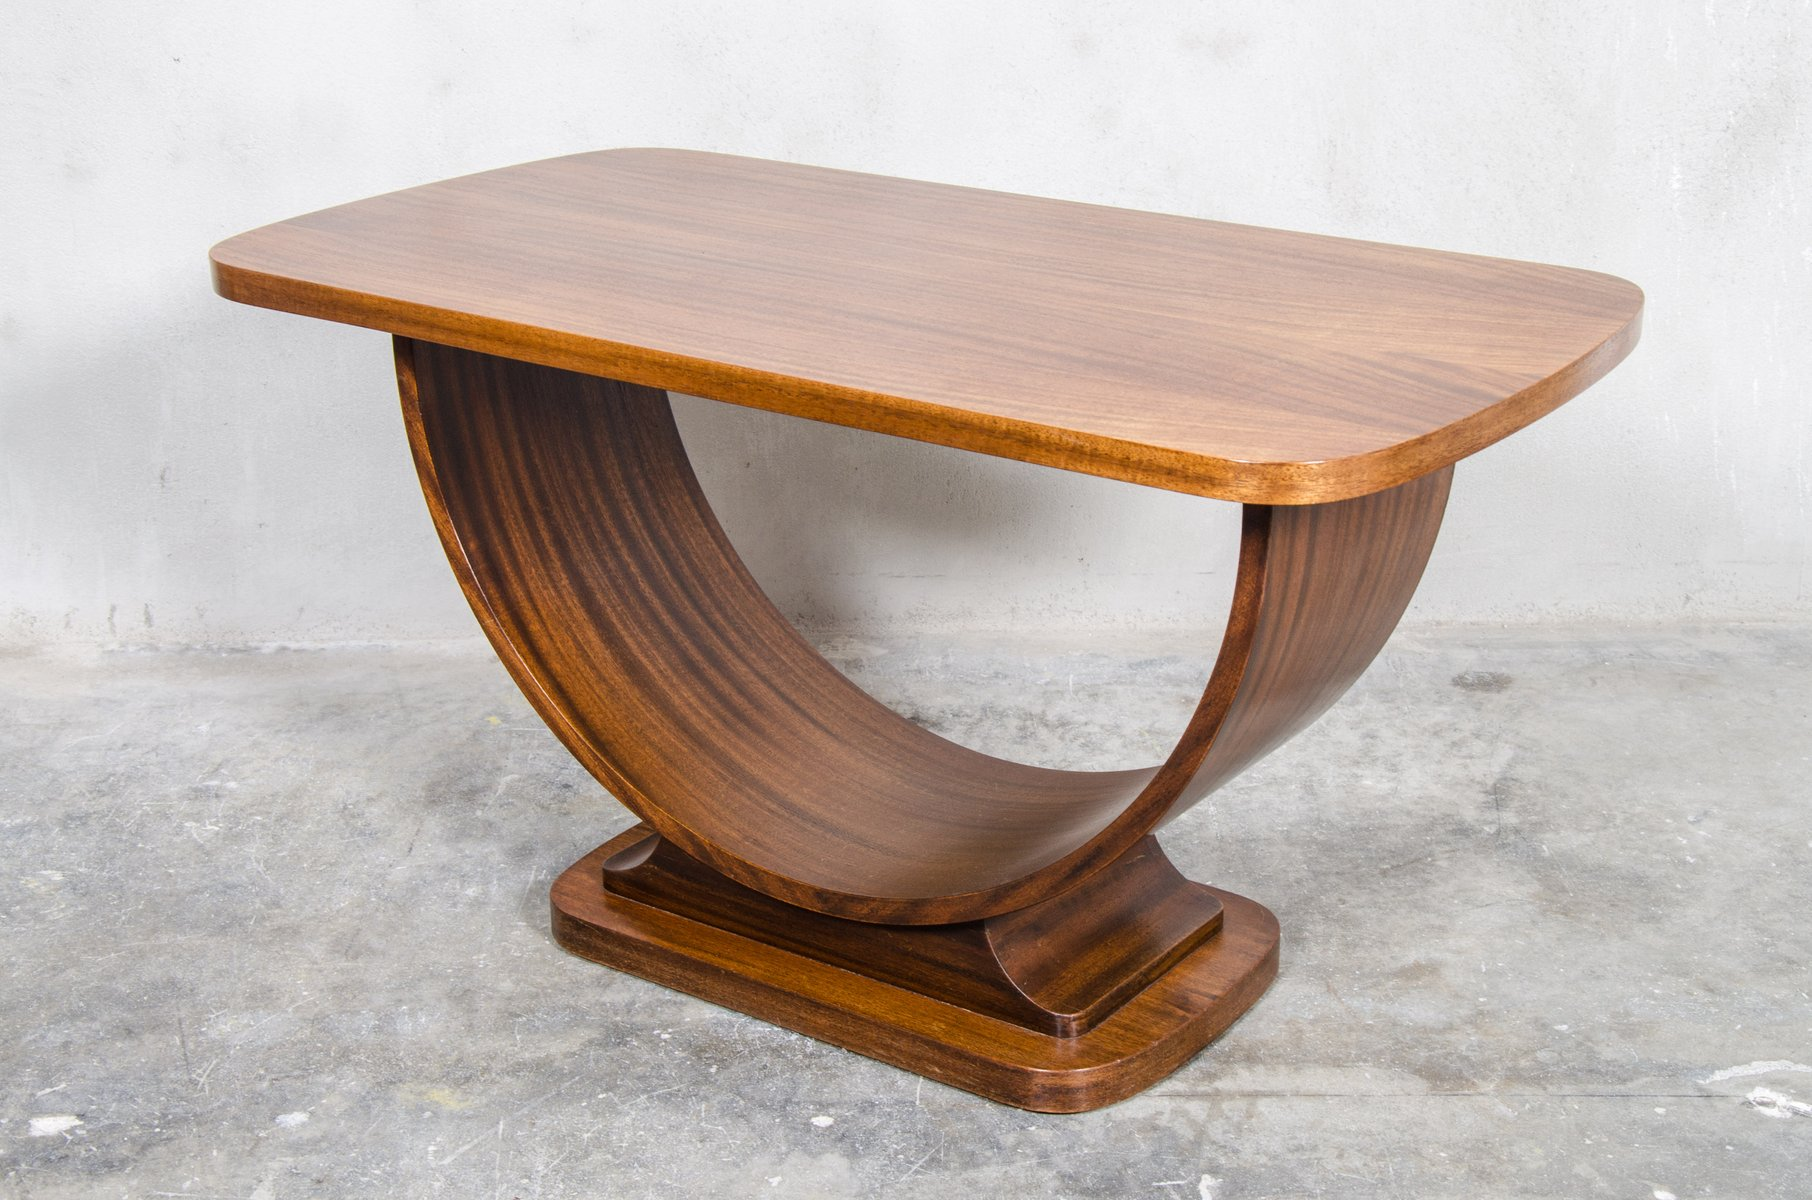 Superior Belgian Teak Art Deco Side Table, 1920s